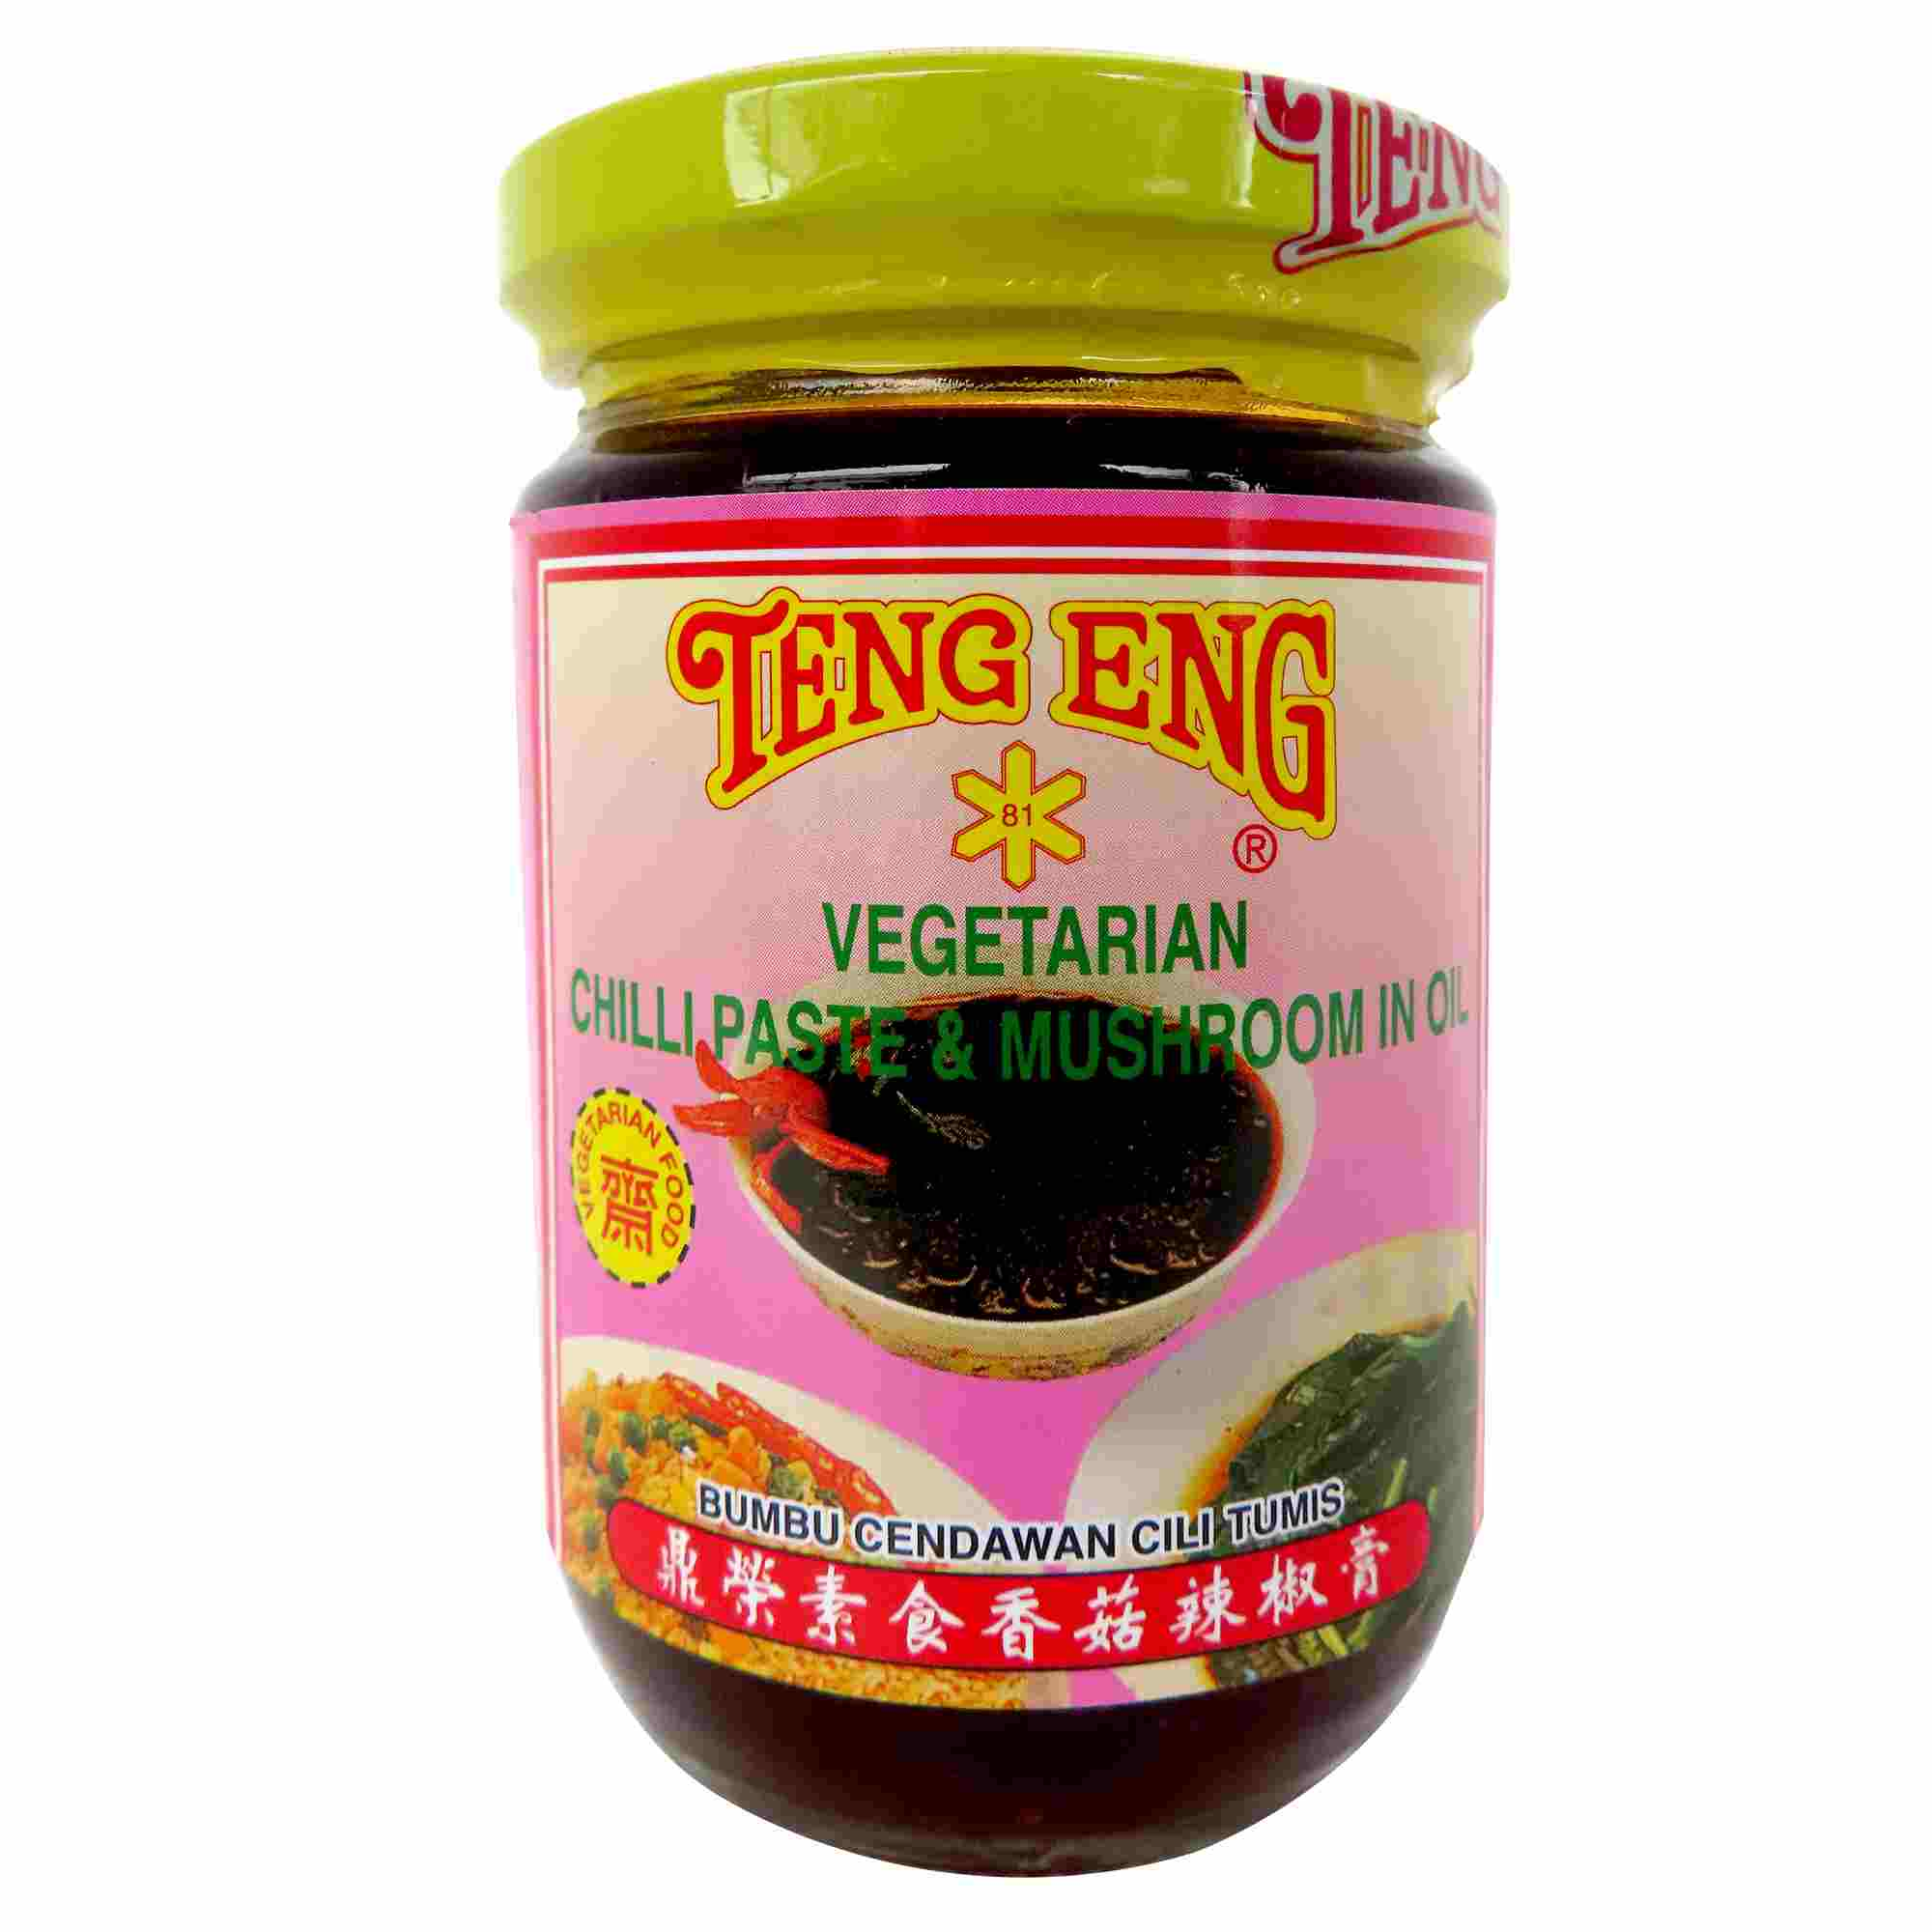 Image Vegetarian Chili Paste and mushroom 鼎荣-香菇辣椒膏 227 grams